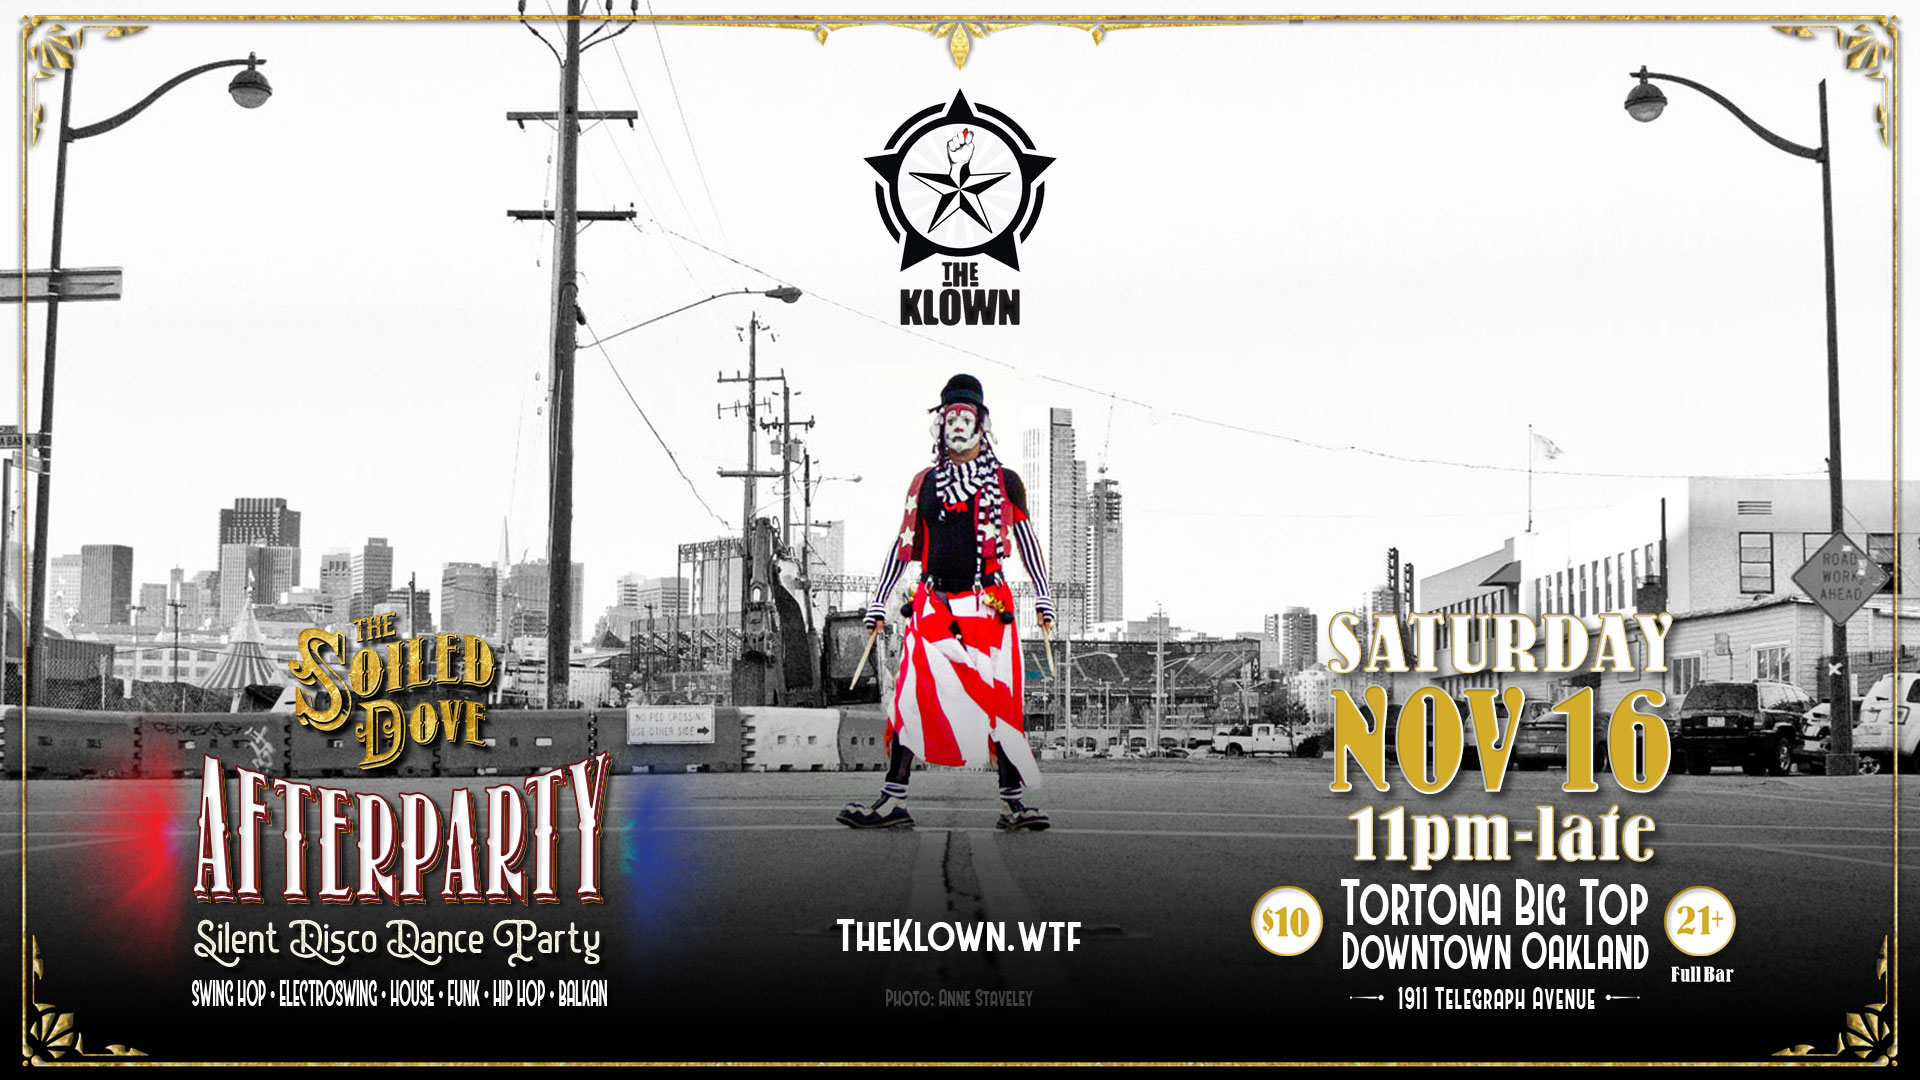 The Soiled Dove silent disco Afterparties with The Klown - November 16, 2019 - Tortona Big Top in downtown Oakland